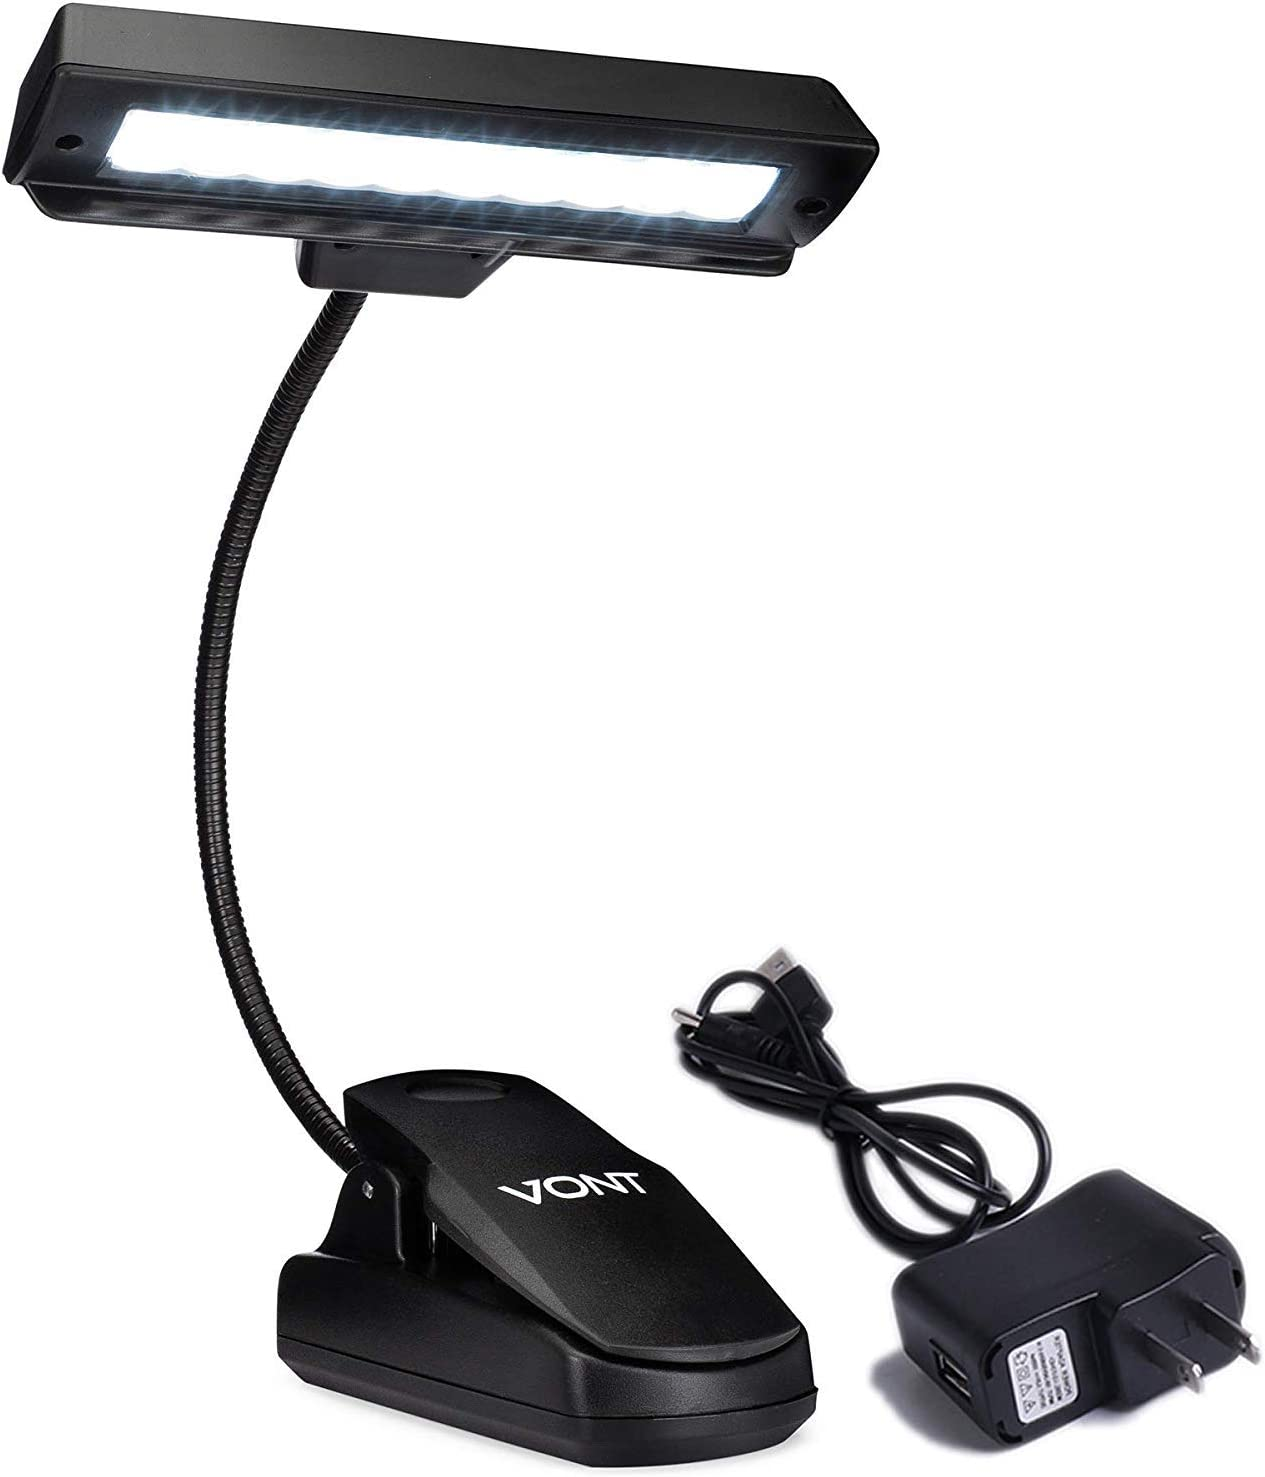 Vont Clip On Book Light, Rechargeable Music Stand Light, Clip On Light Made From 10 LEDs, Orchestra Lamp with Adjustable Neck